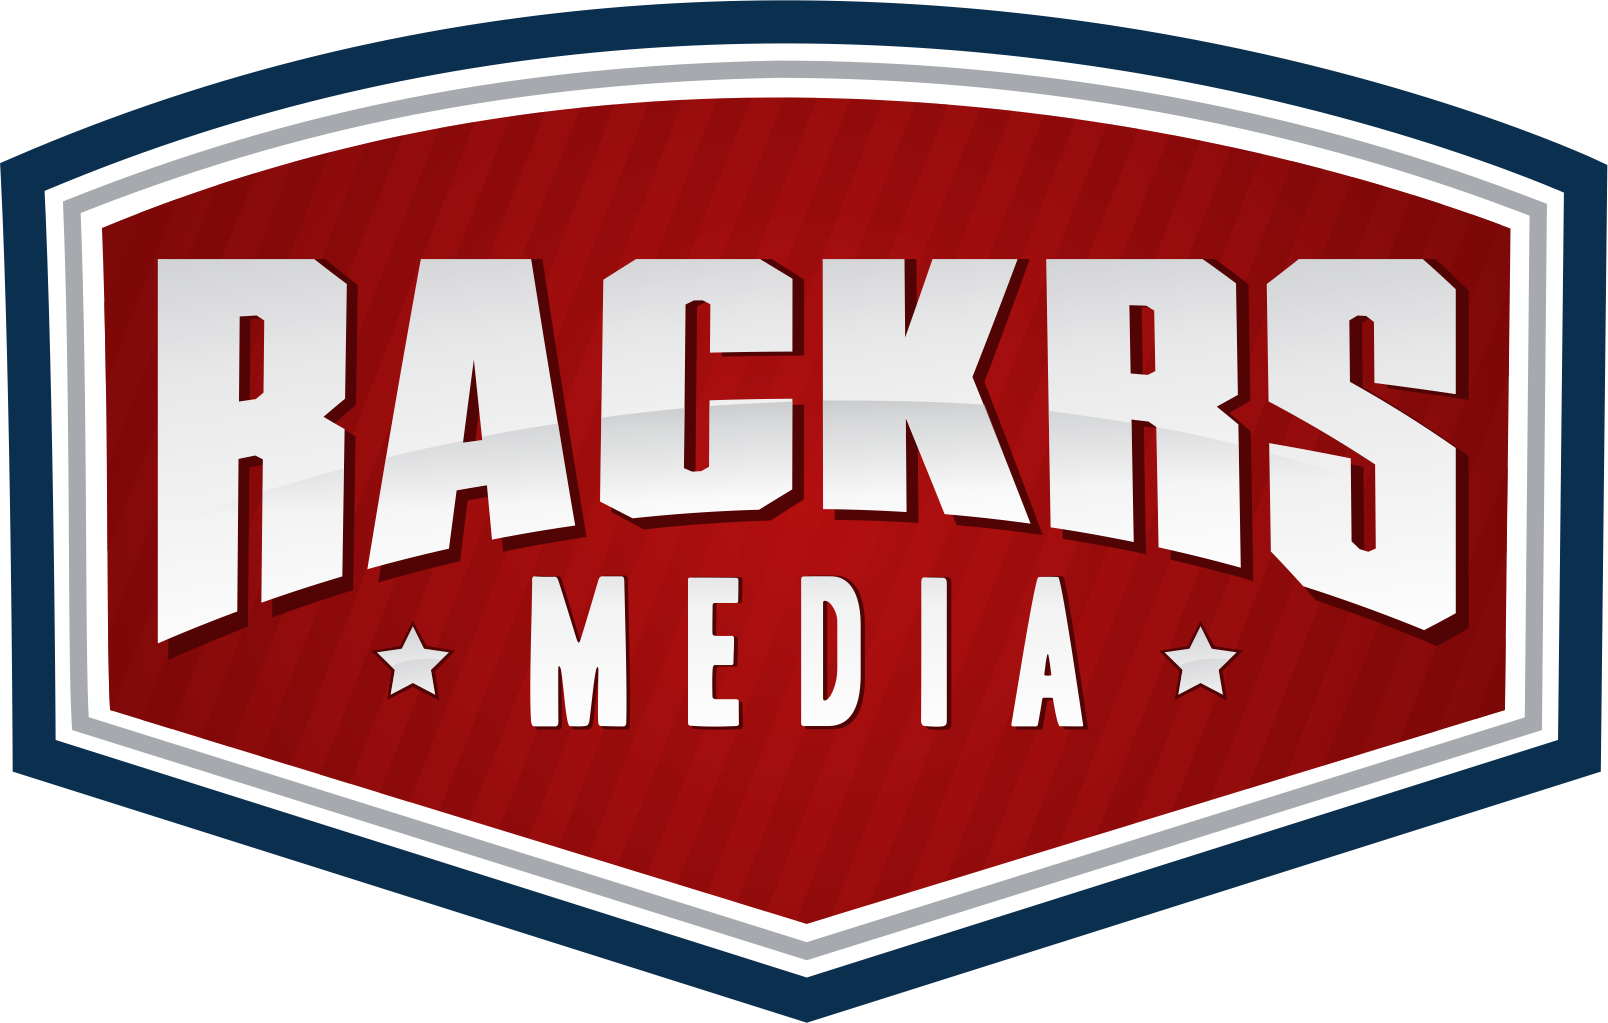 Rackrs Media: San Antonio Video Production Services Company